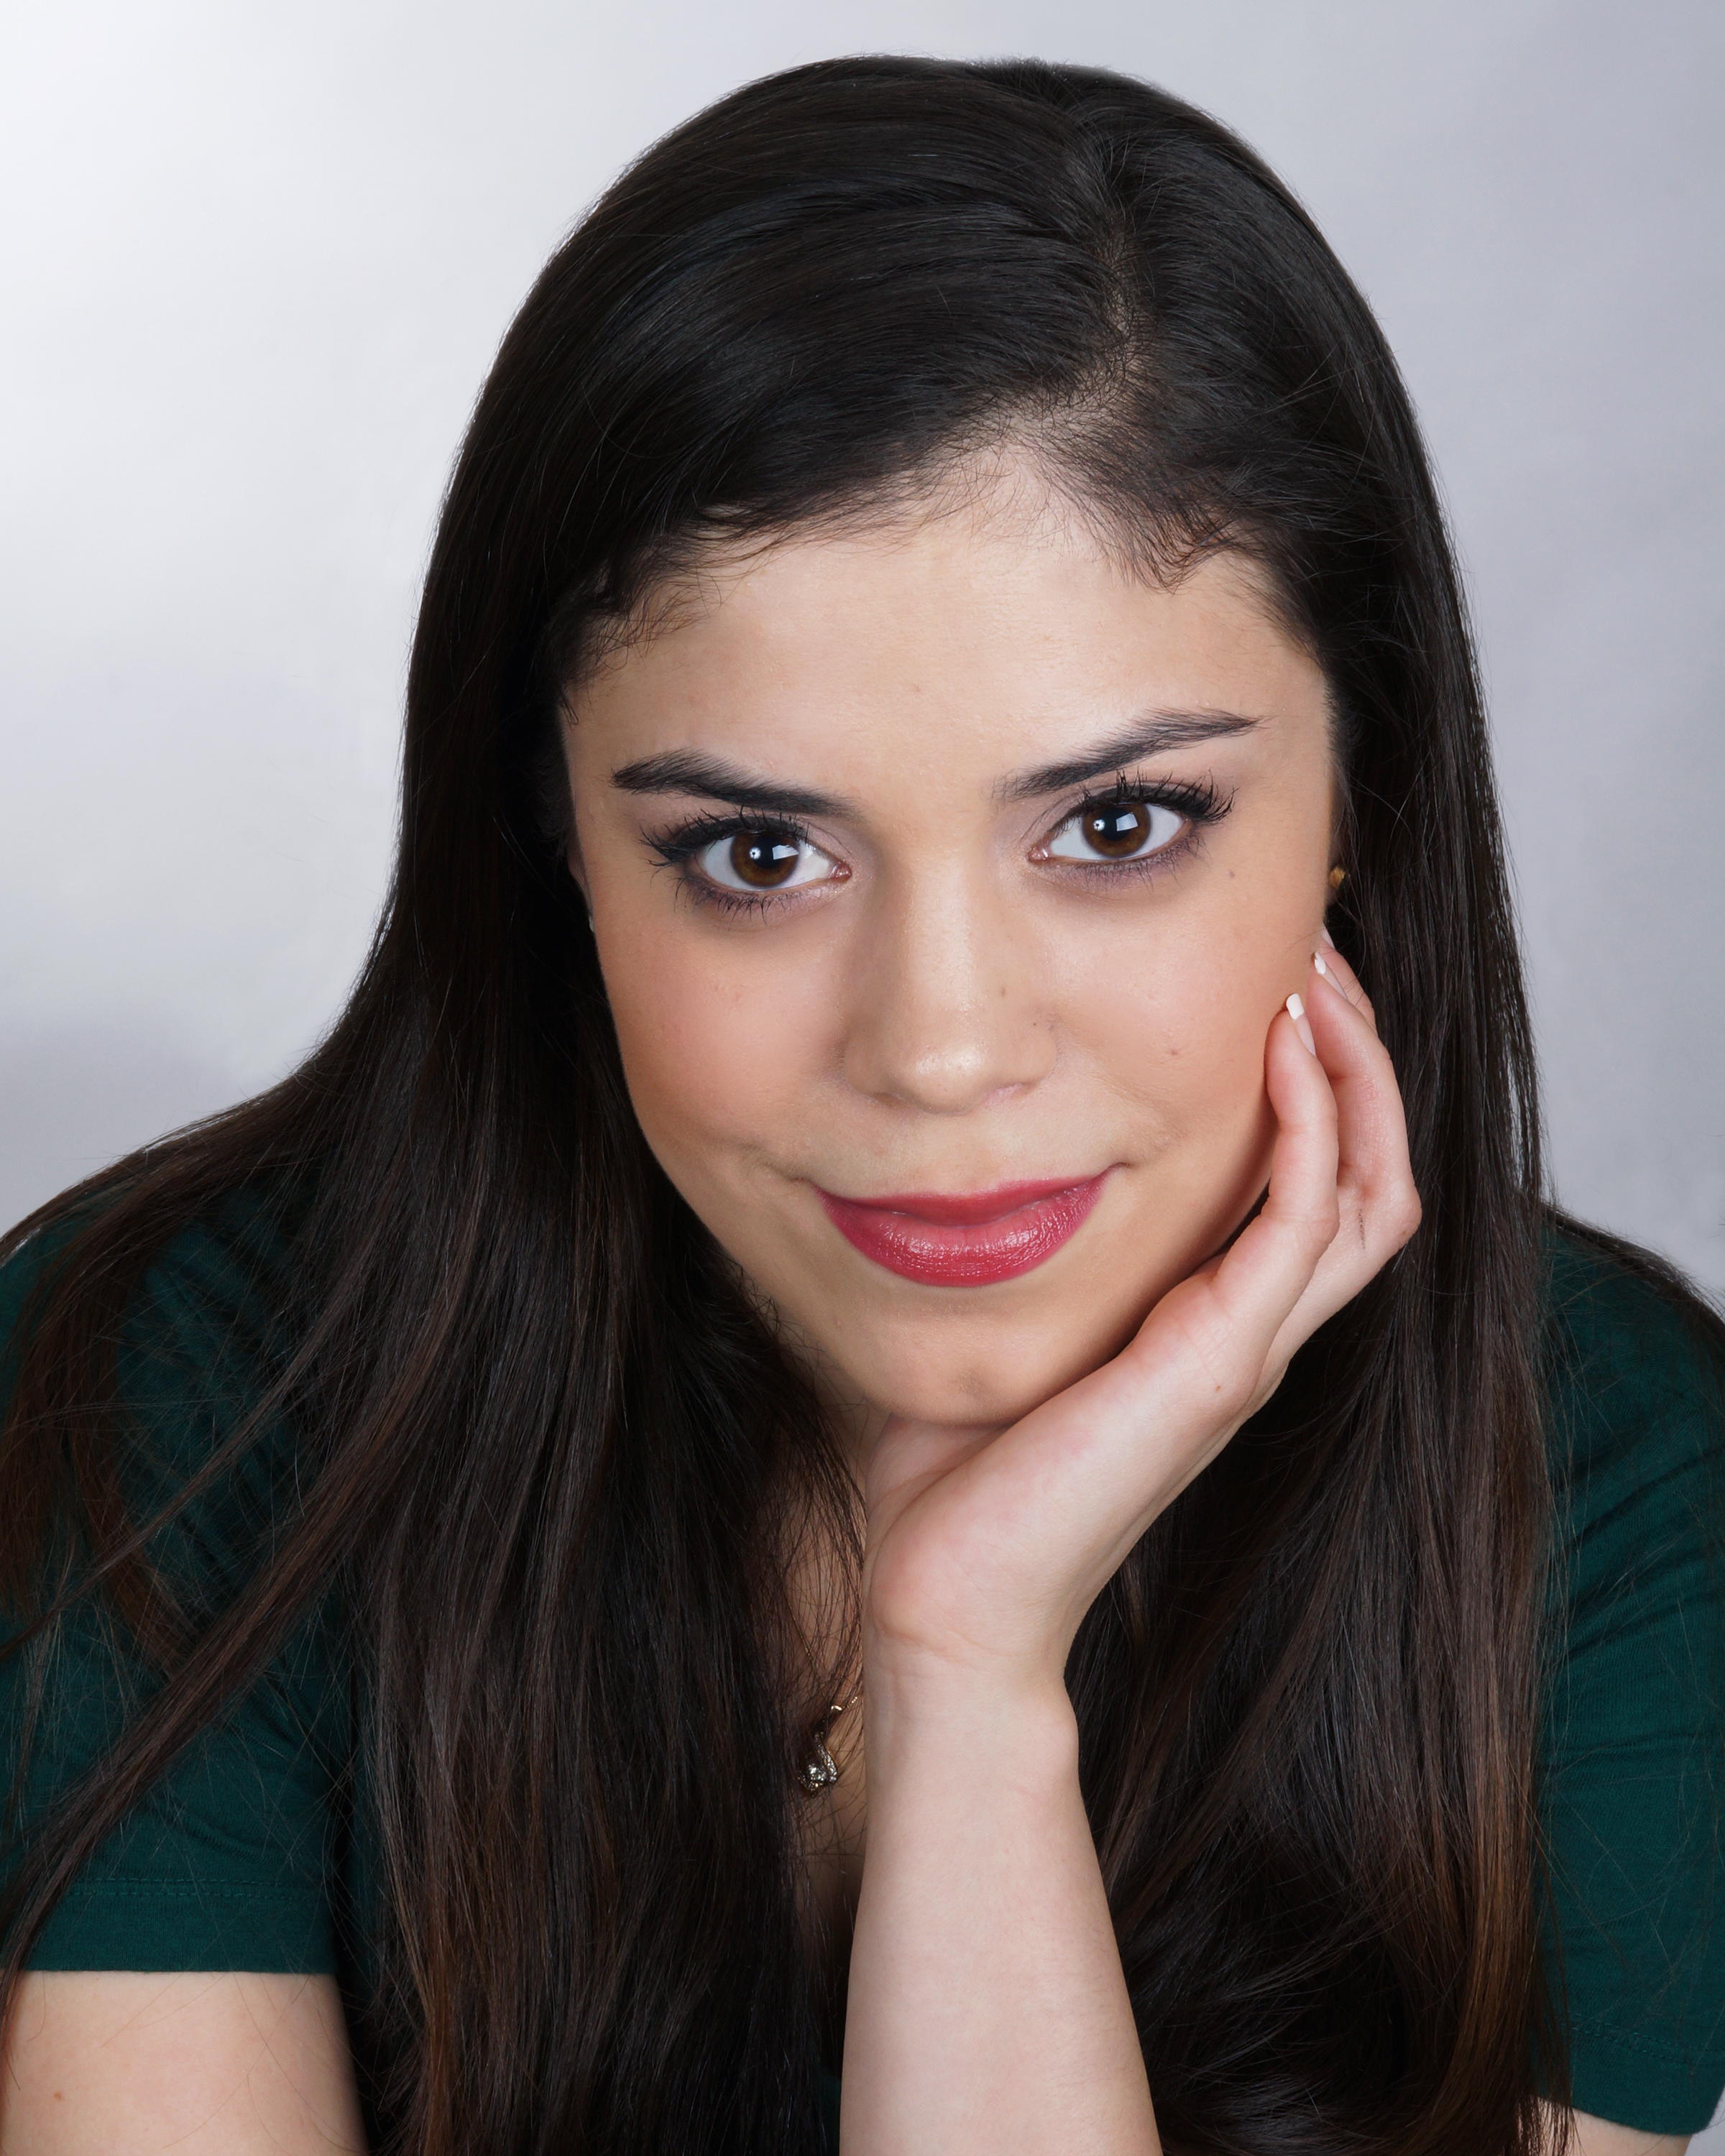 - MARISOL CUSTODIO (Missy) is a theatre and film actress in the local area. She last appeared in the development process and staged readings for Las Mujeres by Erlina Ortiz with Powerstreet Theatre. Marisol is thankful to be a part of this reading and to everyone making this production possible.